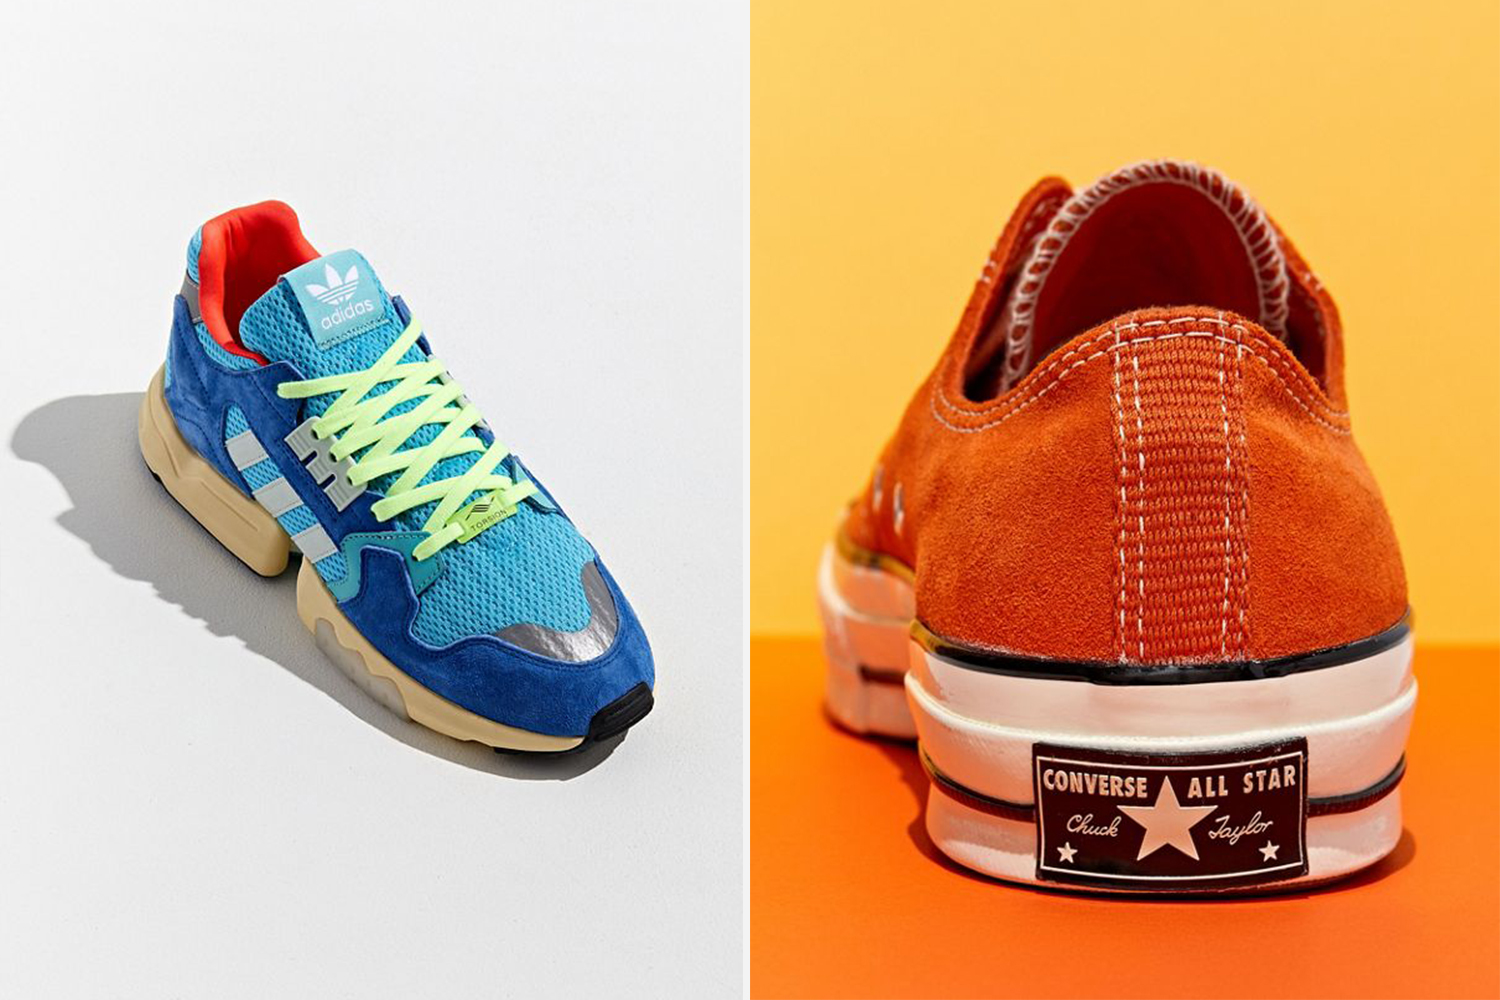 Take 50% Off Adidas, Converse Sneakers at Urban Outfitters